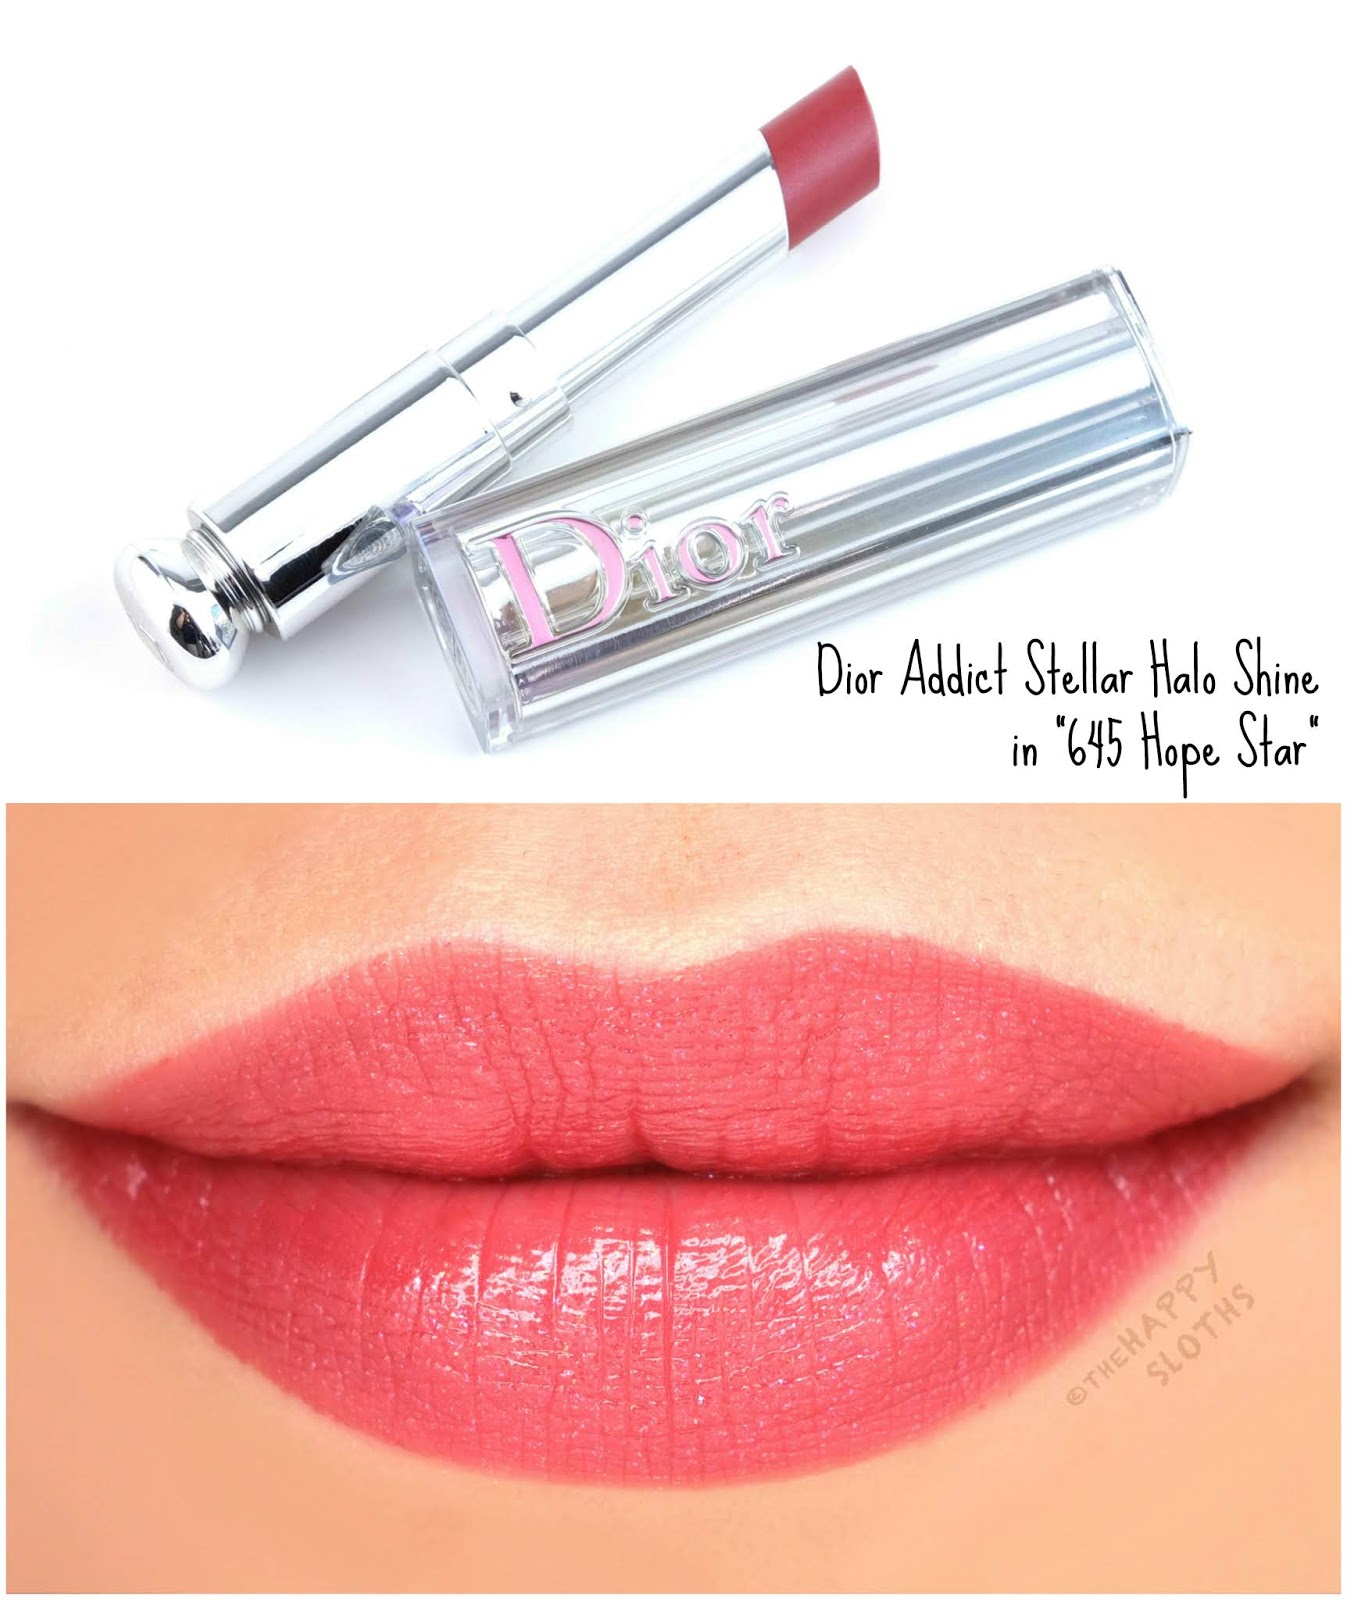 "Dior | Dior Addict Stellar Halo Shine Lipstick in ""645 Hope Star"": Review and Swatches"